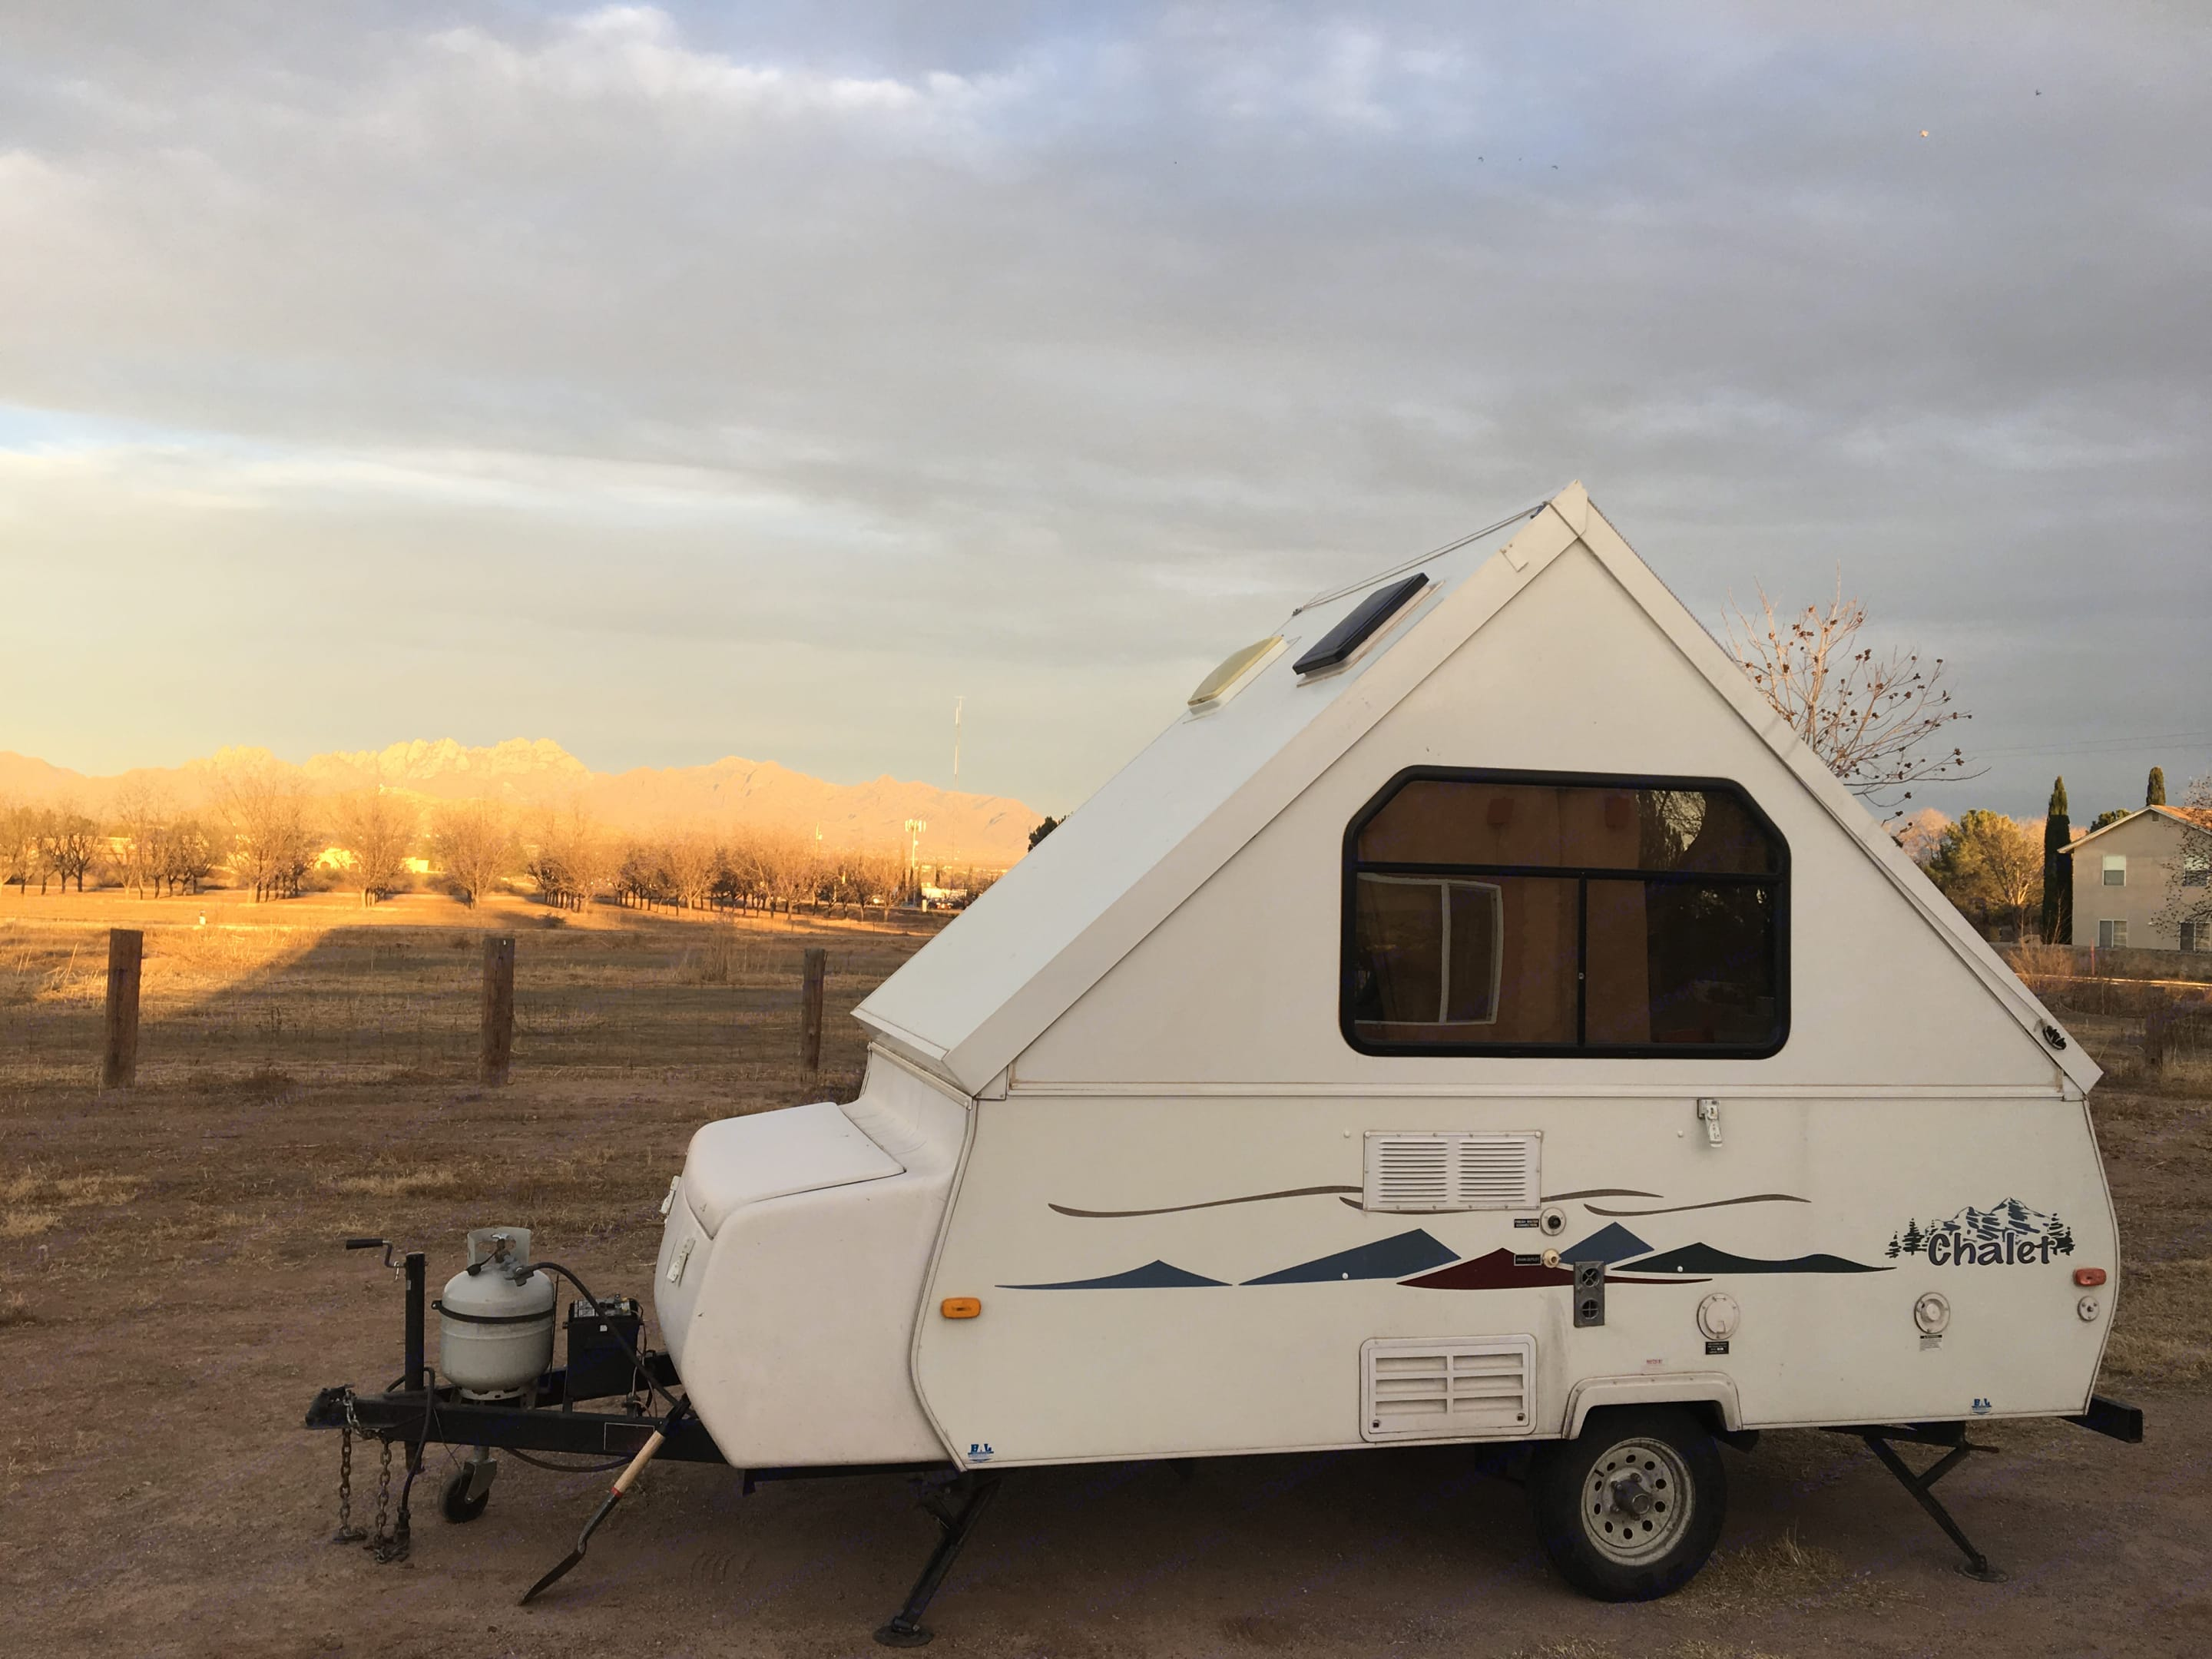 Here she is all set up in Las Cruces at sunset. ChaletRv A-Frame 2005